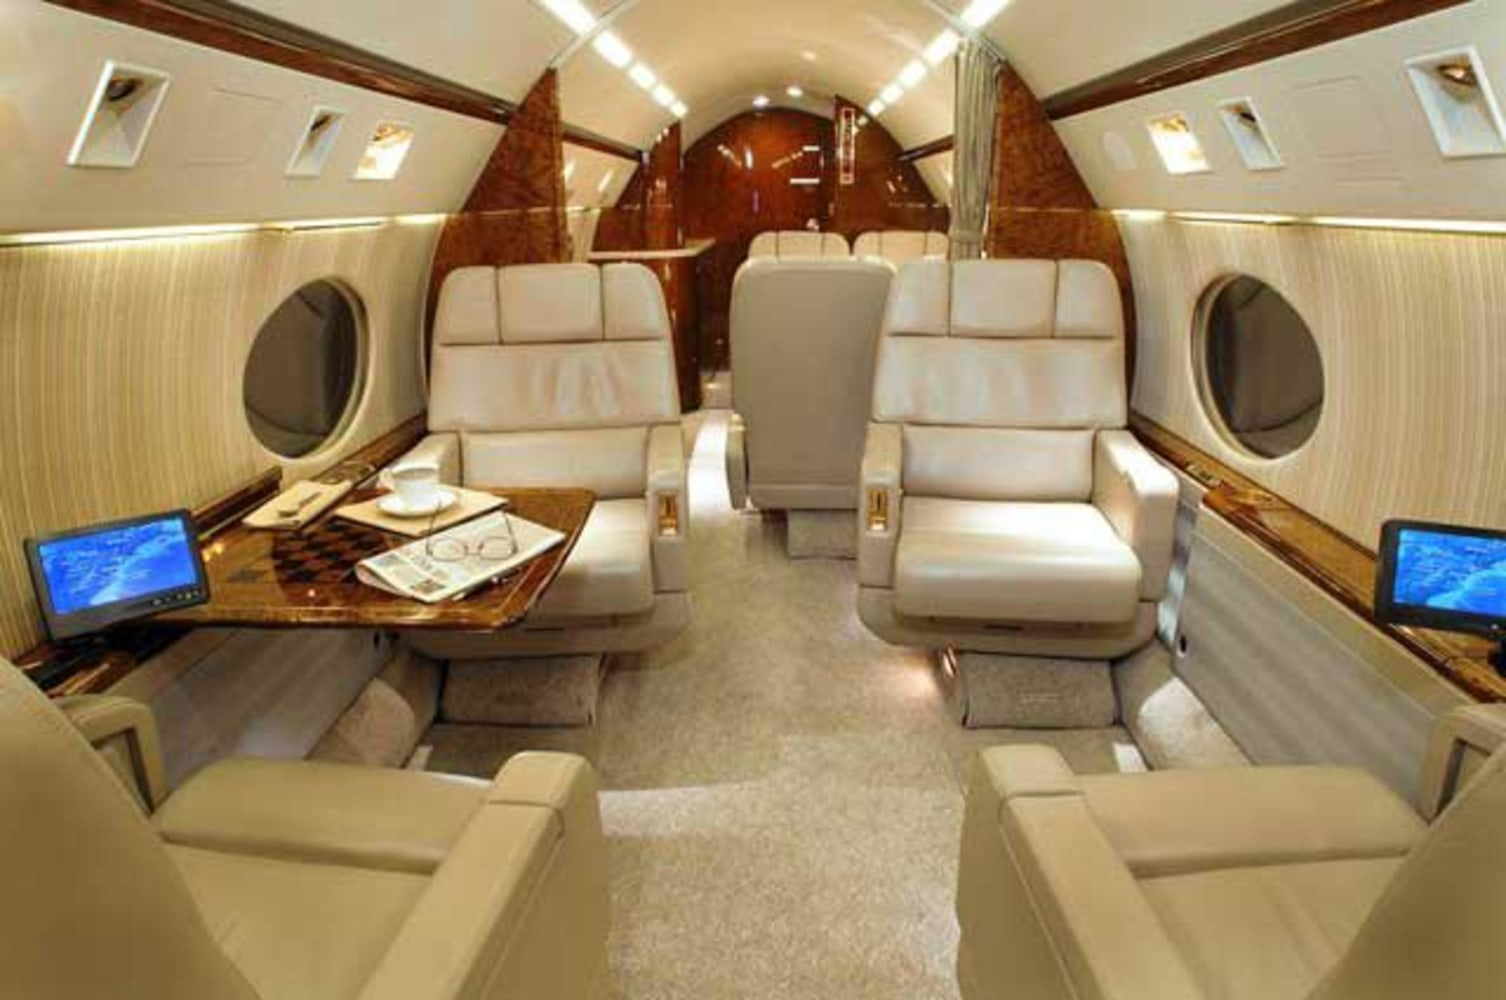 Gallery For Gt Inside Justin Biebers Private Jet